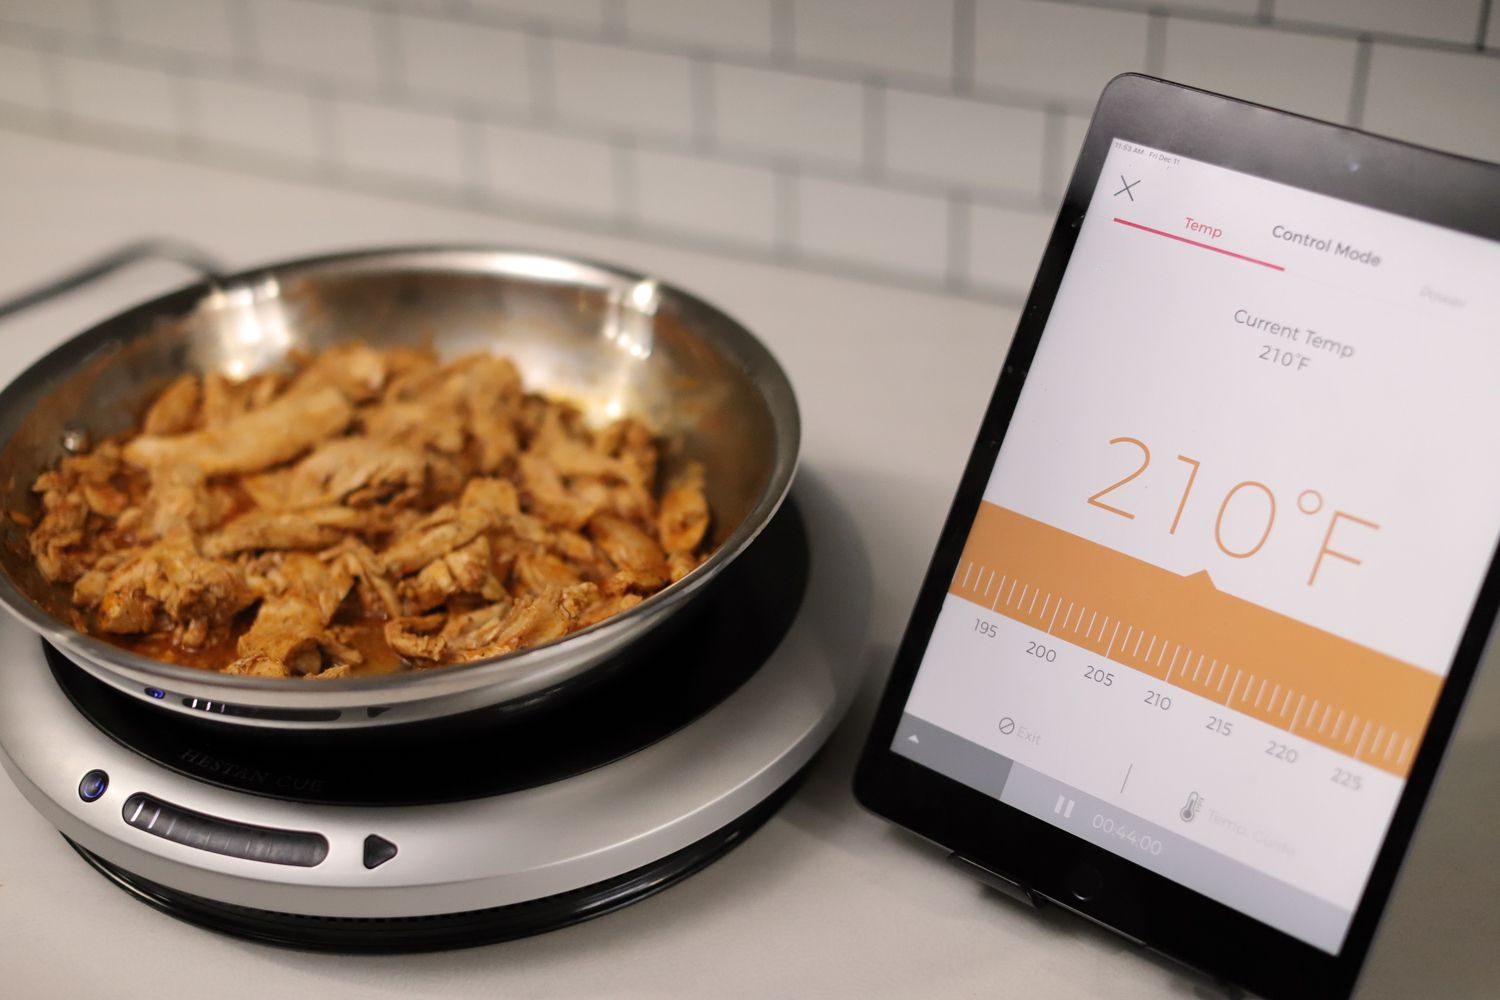 hestan-cue-smart-cooking-system-using